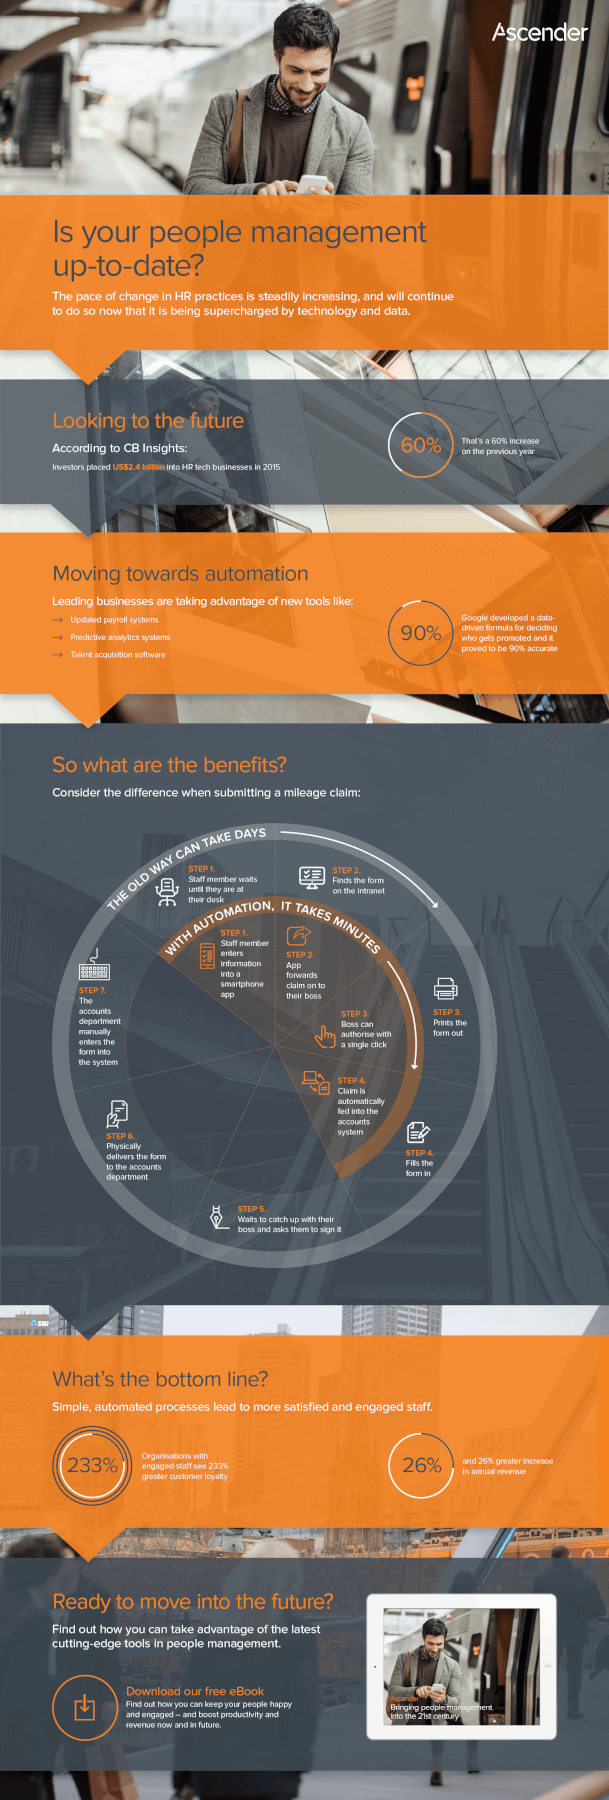 Ascender-People_Management-infographic_v8